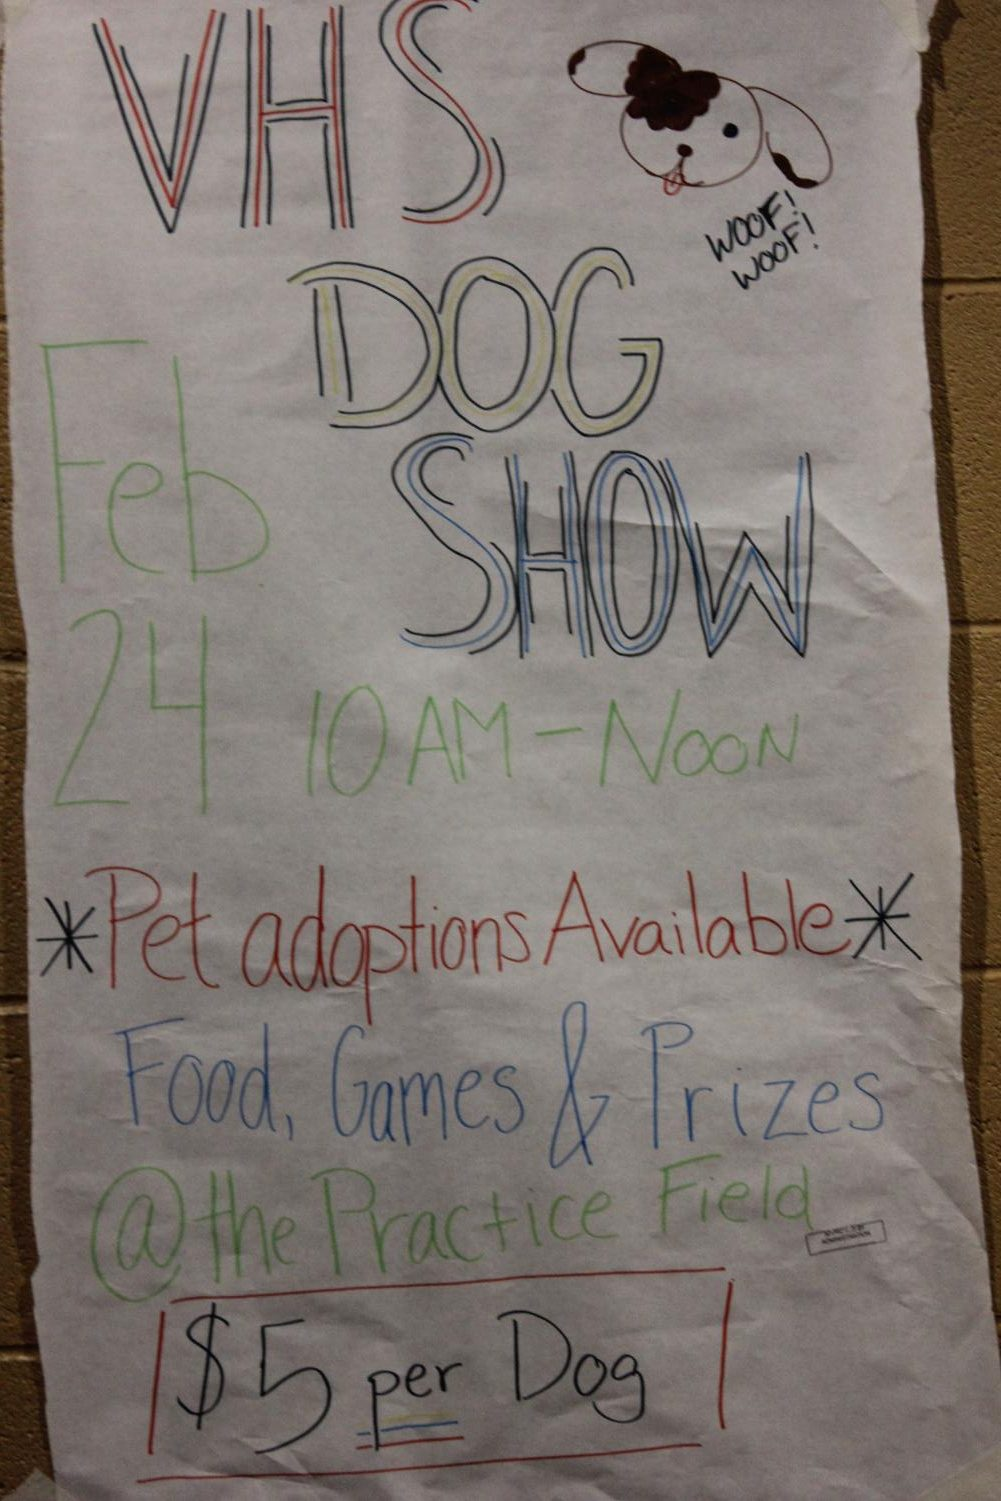 Verrado students and community members participated in the second annual Dog Show. The National Honor Society hosted the event on February 24. Photo credit to Krysyan Edler.